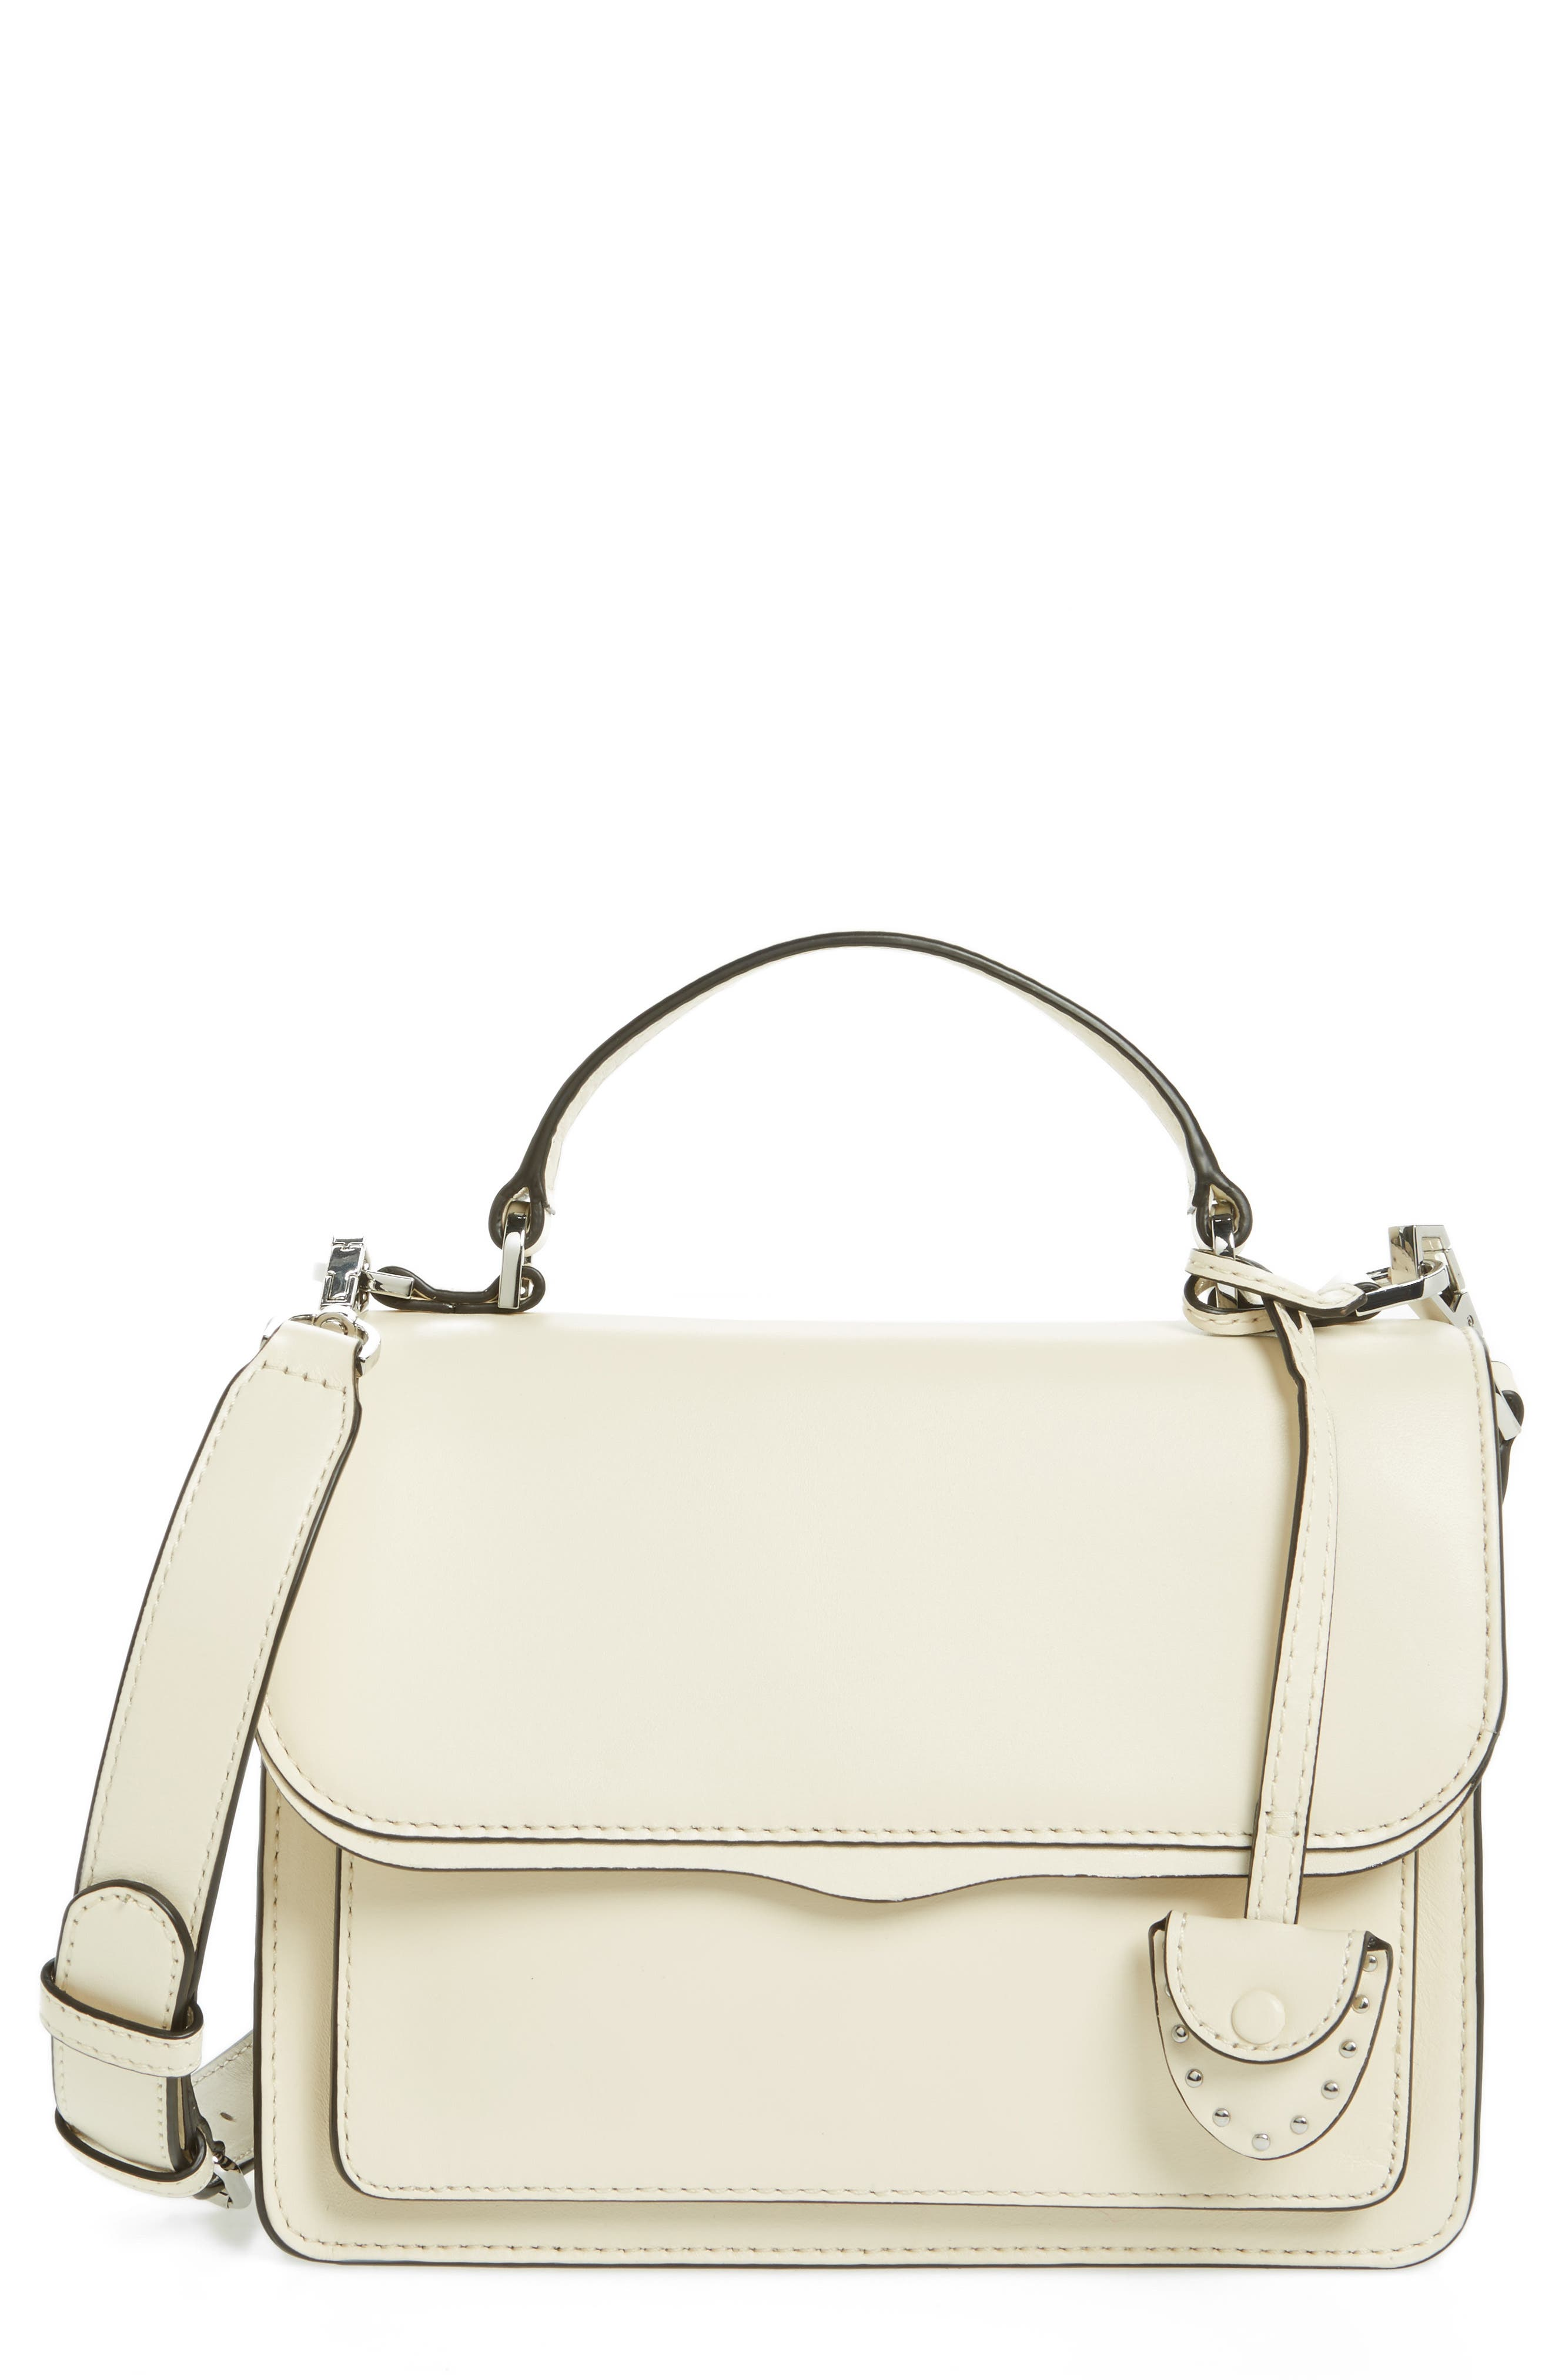 Small Top Handle Crossbody Bag,                             Main thumbnail 1, color,                             Ant Wht Multi